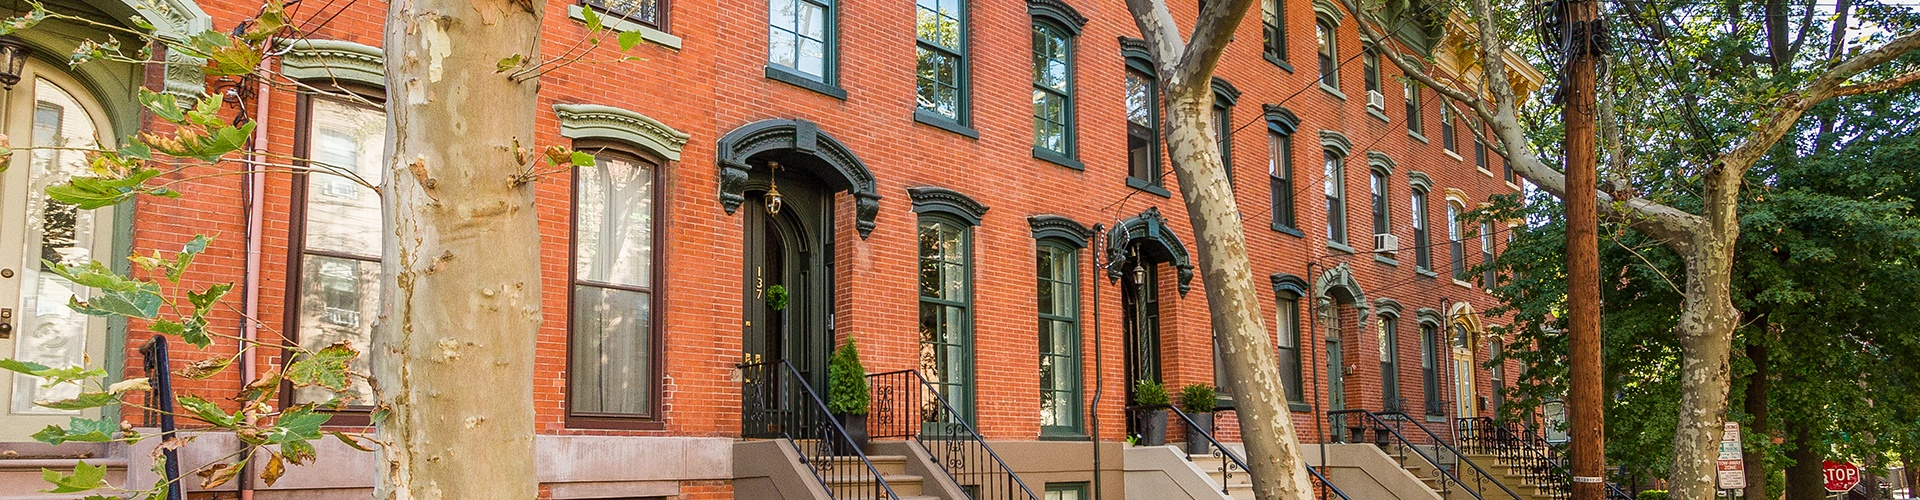 Historic Spotlight: 137 Mercer Street